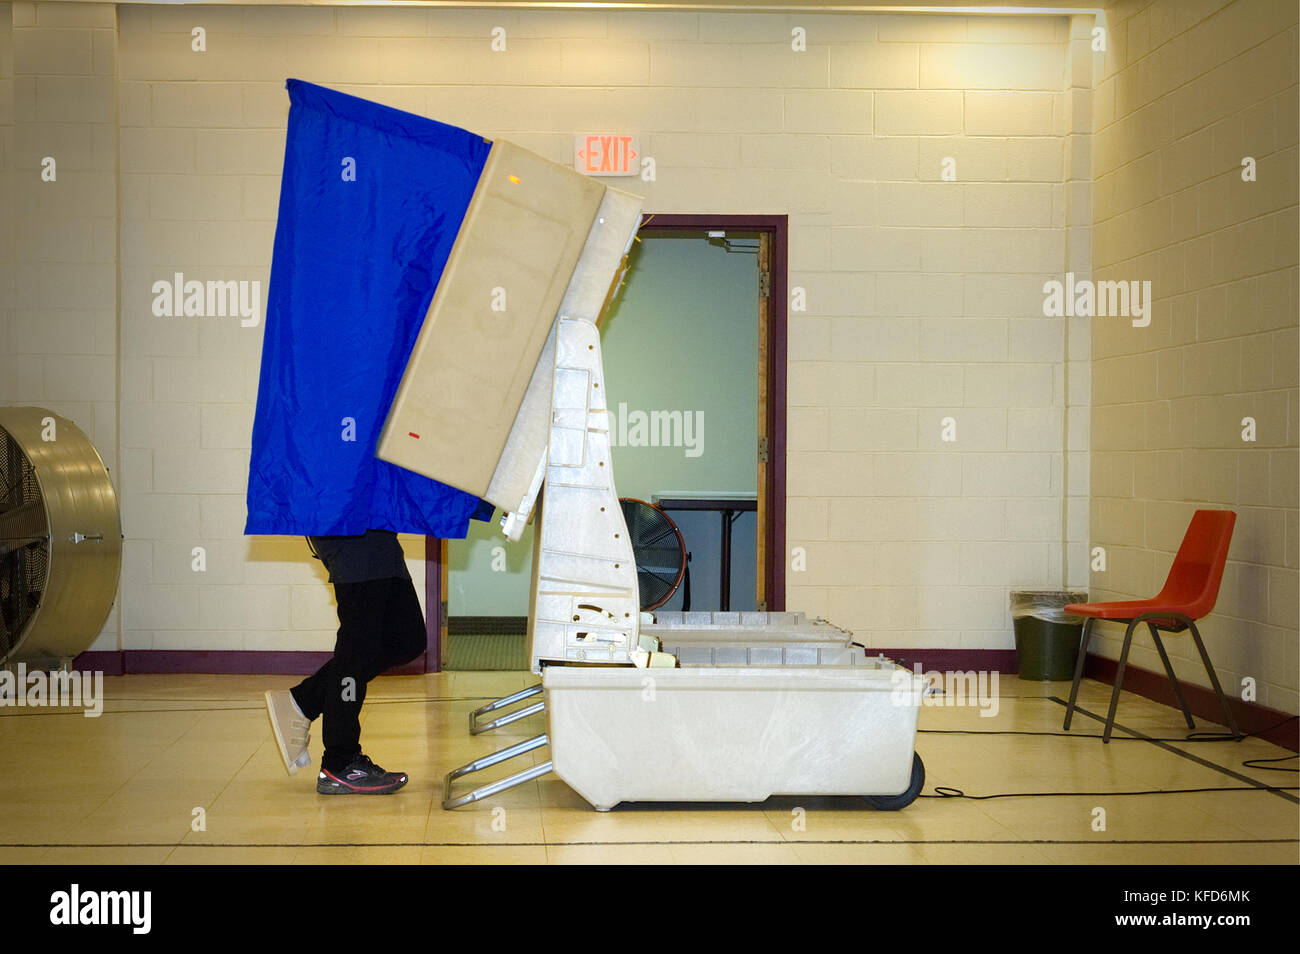 Voter casts a vote at an electronic voting machine at a polling station in Philadelphia, PA. - Stock Image